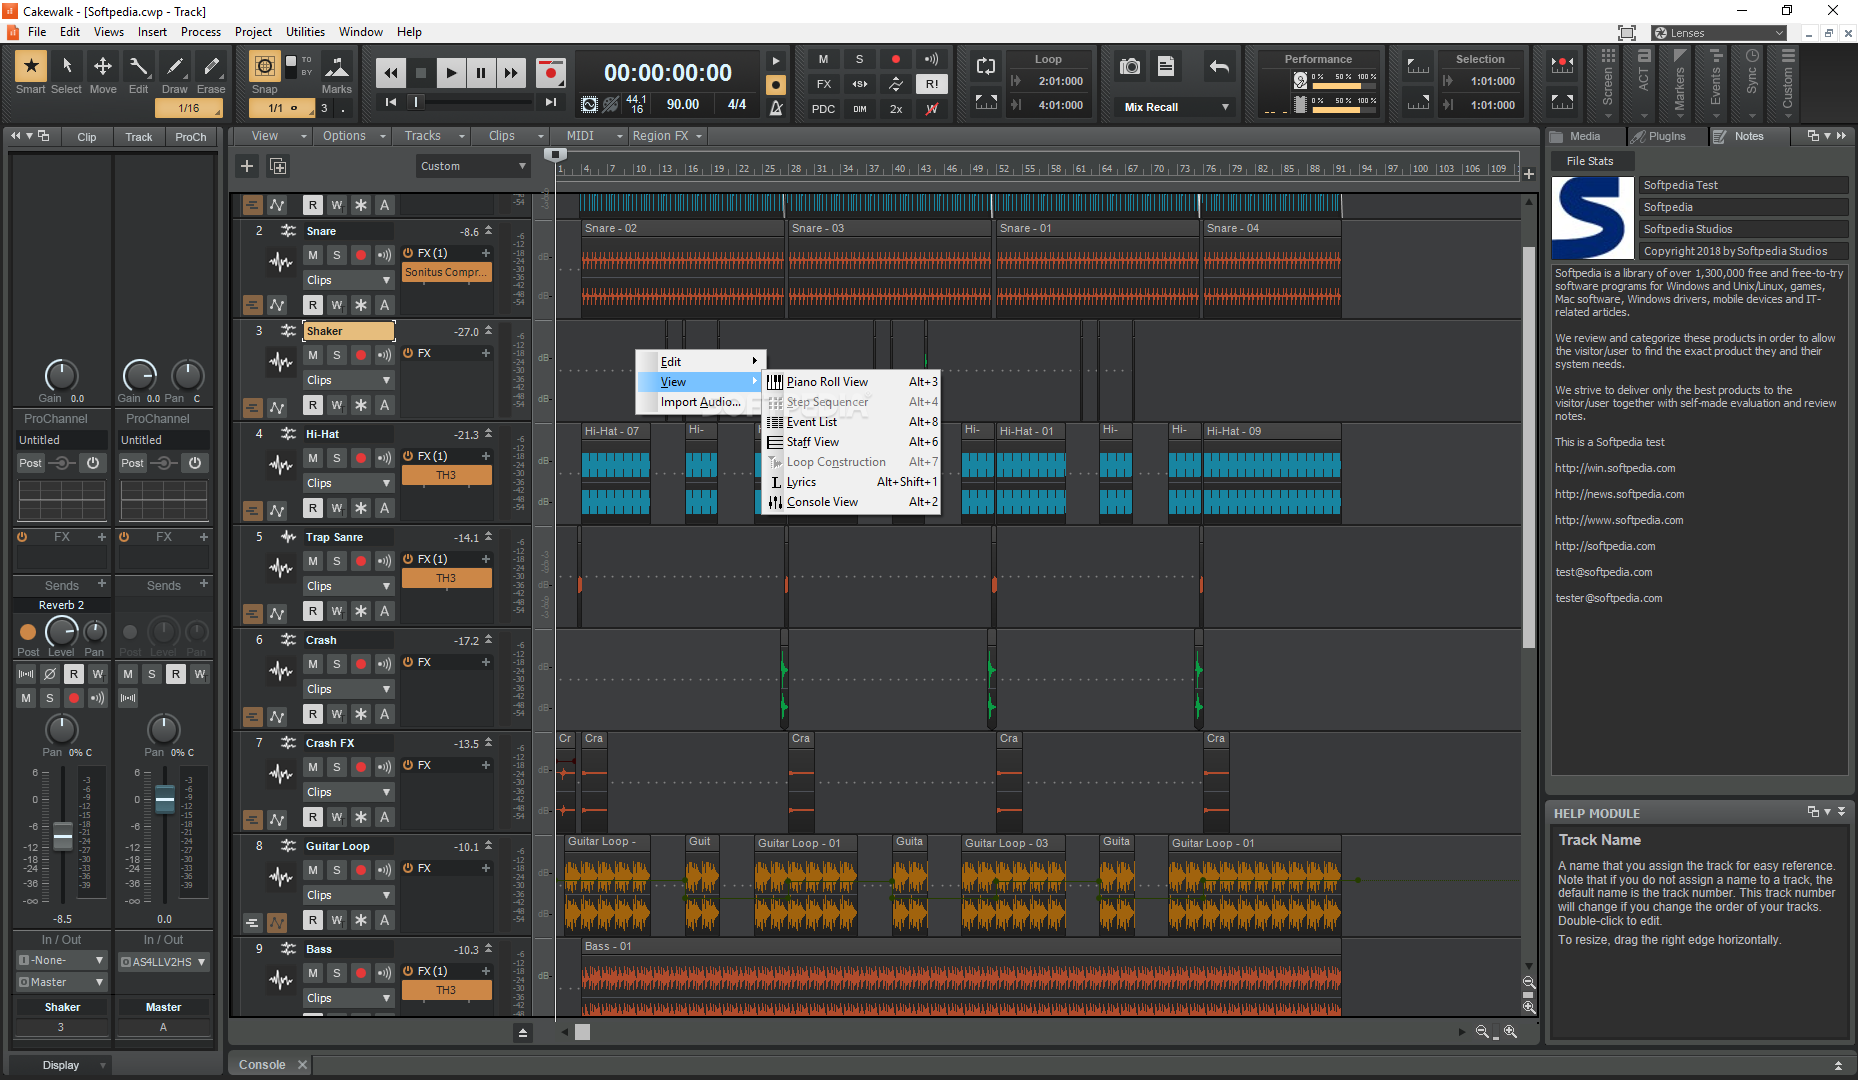 Download Cakewalk 5 0 4